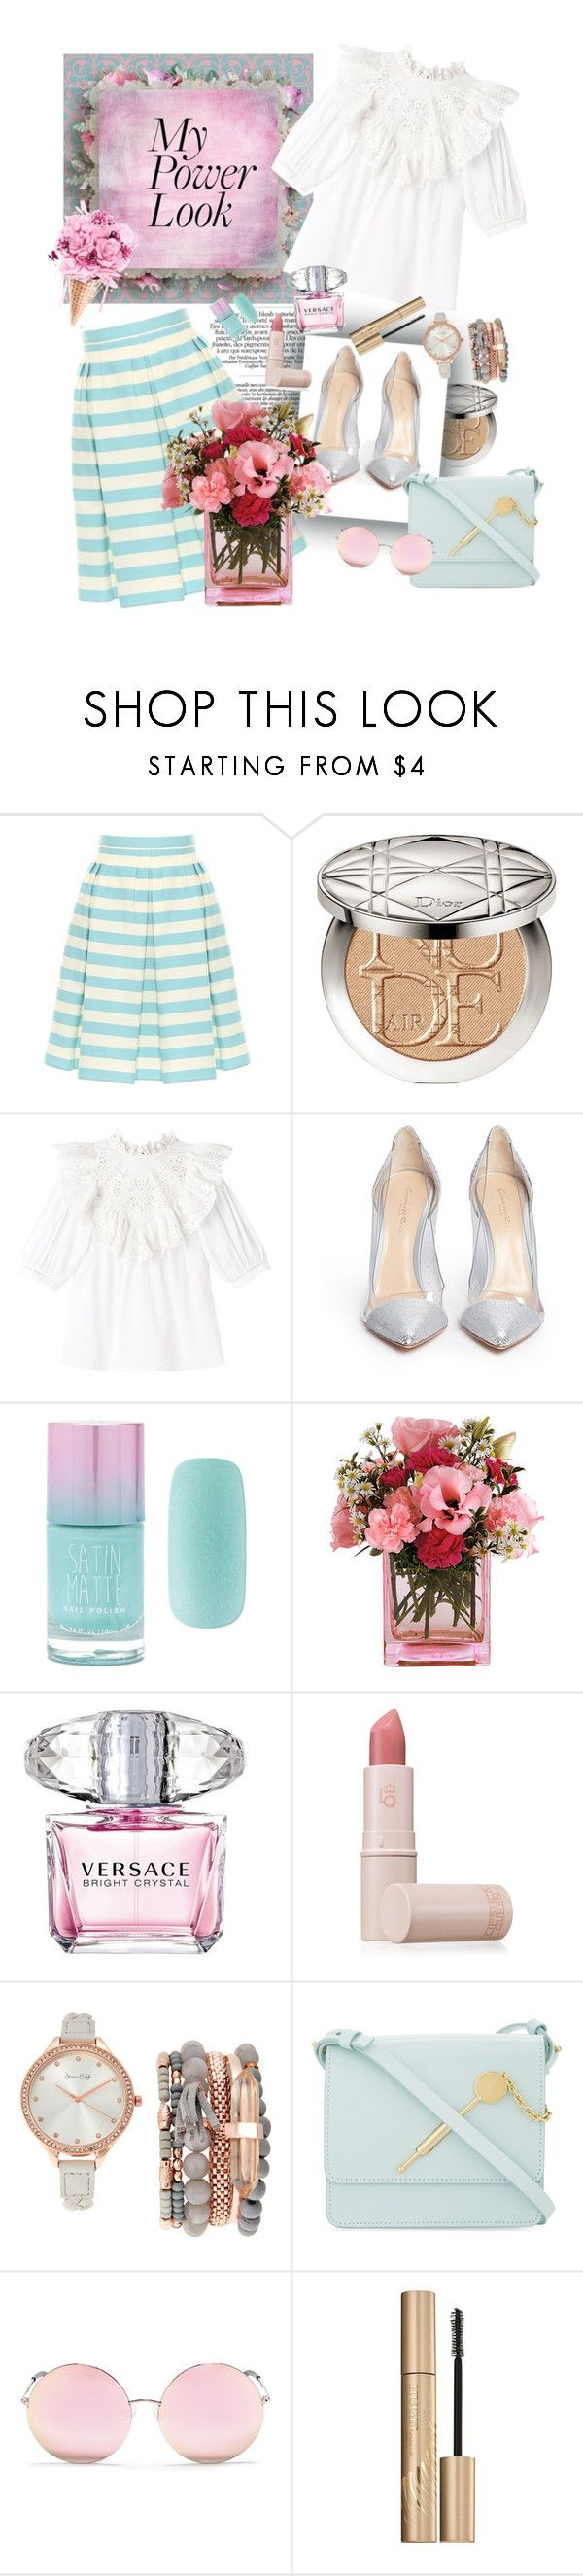 """Untitled #198"" by etotnikzanyat on Polyvore featuring RED Valentino, Christian Dior, Gianvito Rossi, Forever 21, Versace, Lipstick Queen, Jessica Carlyle, Sophie Hulme, Matthew Williamson and Stila"